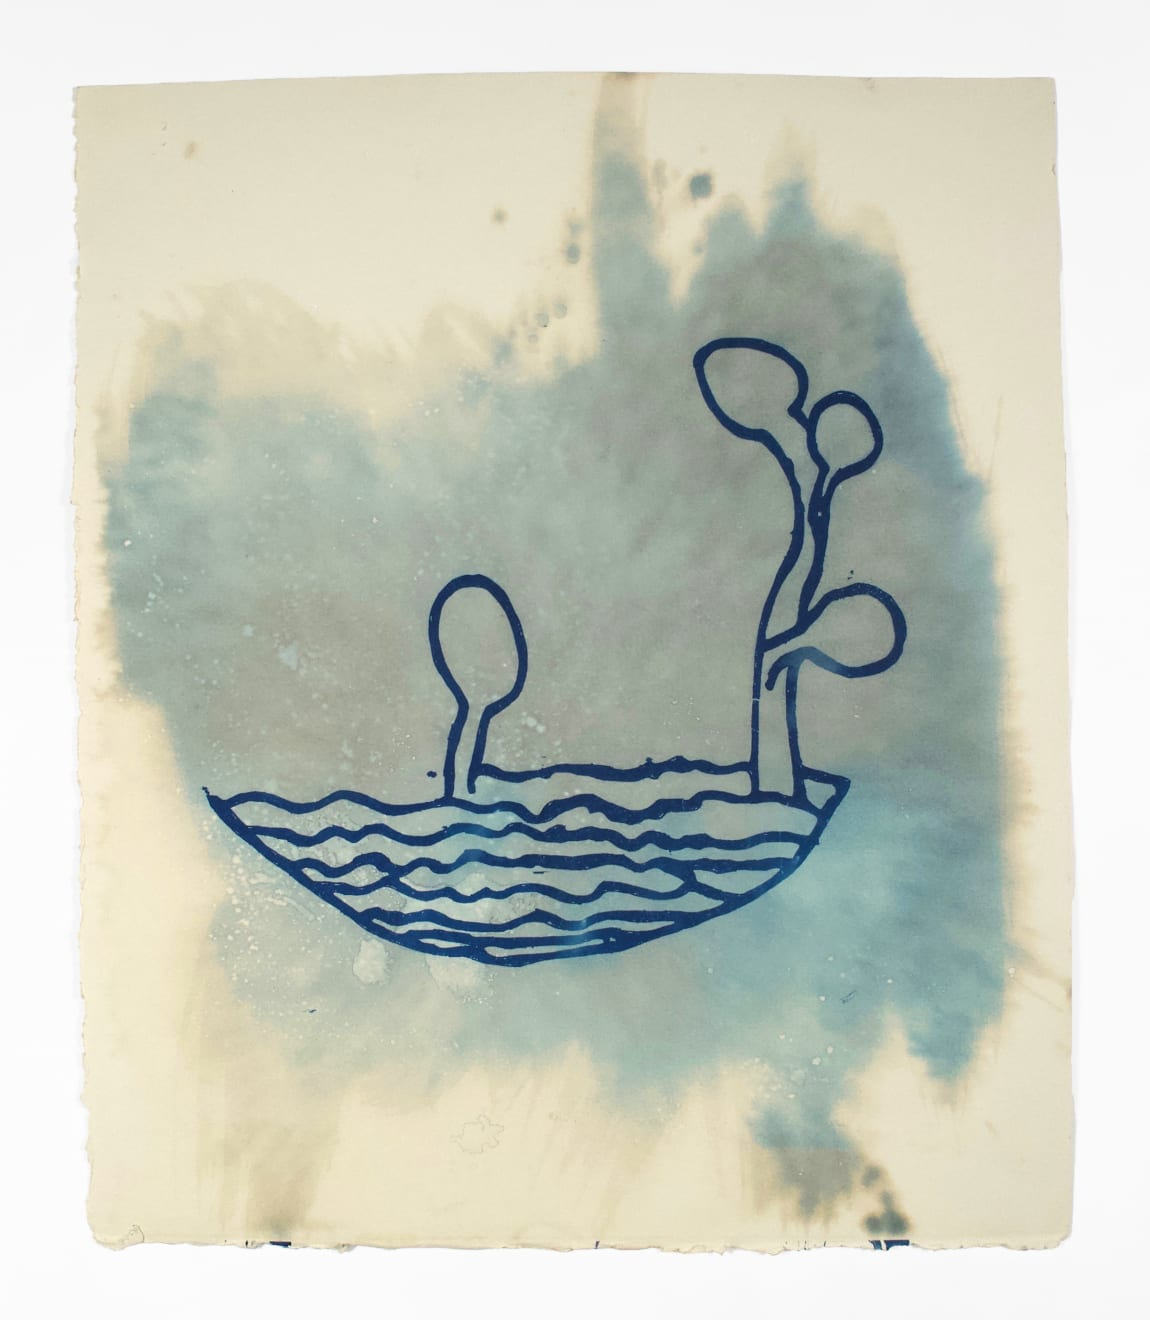 """Dario's work has always explored the human urge to create, even in times of great difficulty. The cyanotypes are prints (a """"ghost image"""") of an original drawing in its maker's own hand. Flashes of creative brilliance by deceased writers and musicians, they are simple, direct, and speak to a kind of vulnerability which is honest, beautiful, and timely. The original images are drawings the authors made in the margins surrounding poems or lyrics; the visual daydreams, doodles, wanderings, flights of imagination that were, in the way Dario sees it, quietly documenting the main creative output—the language. Their prose and lyrics are remembered but not the drawings. As with all of Dario's cyanotypes, or sun prints, he is marveling at the power of our star, the sun, to create life, to revive lost ideas/memories. Although each author is now deceased, the sun revives their dream, or as Dario puts it, """"the sun makes them sing again."""" Dario Robleto Azures of the Natural World (Proust), 2014 cyanotype, ghost image of an original drawing by Marcel Proust, sunlight, ocean water, watercolor paper 13 1/8 x 11 in (33.3 x 27.9 cm) DR 373 $4,500"""